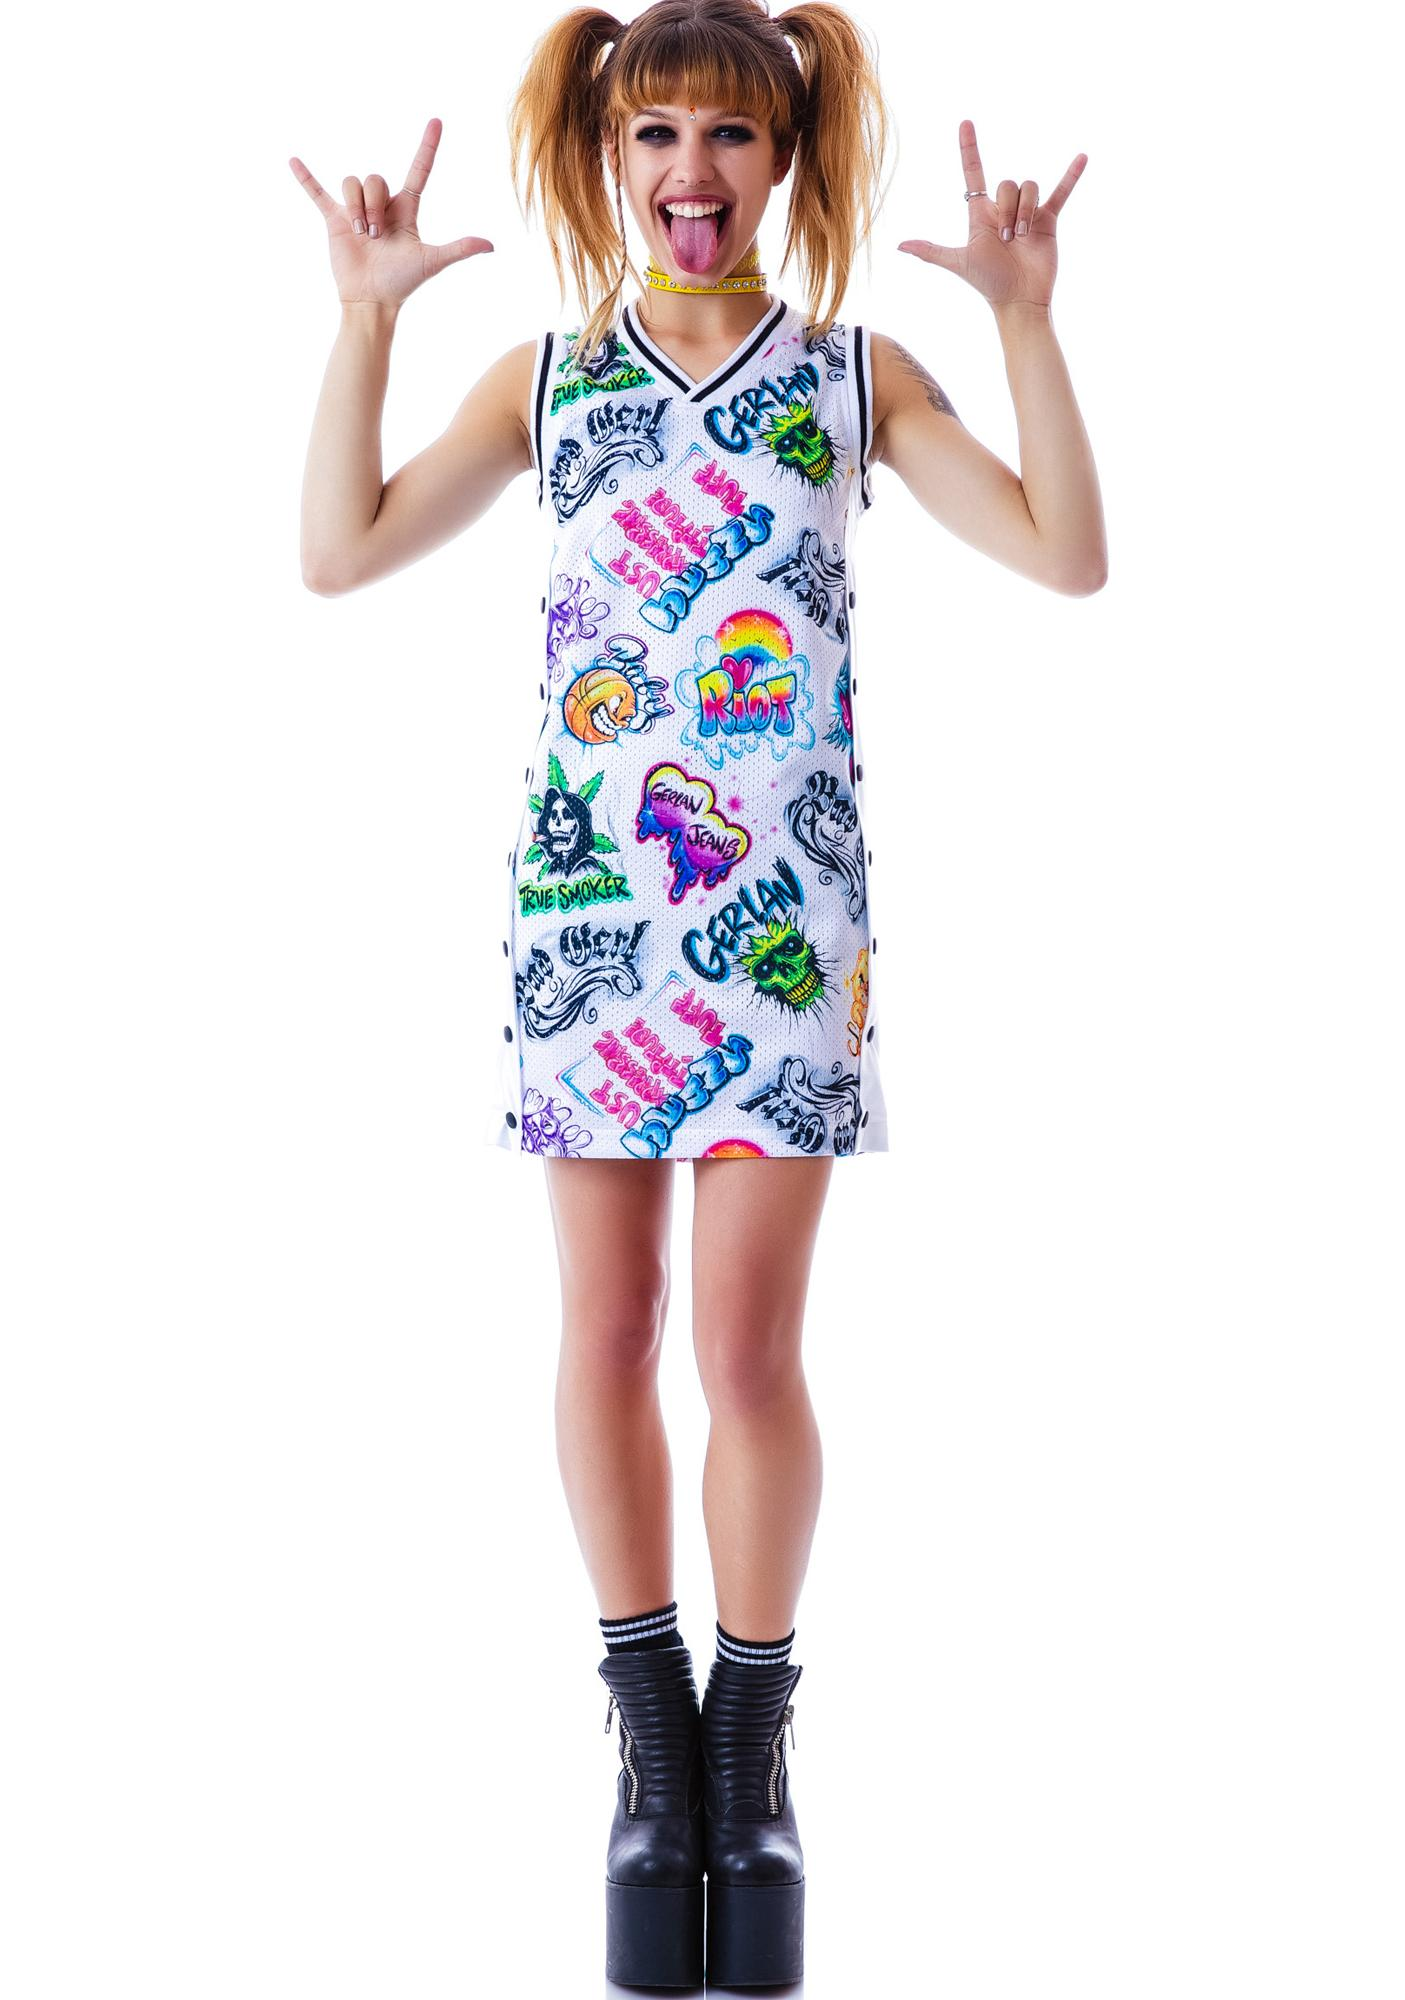 Gerlan Jeans Gerl Unit B-Ball Dress